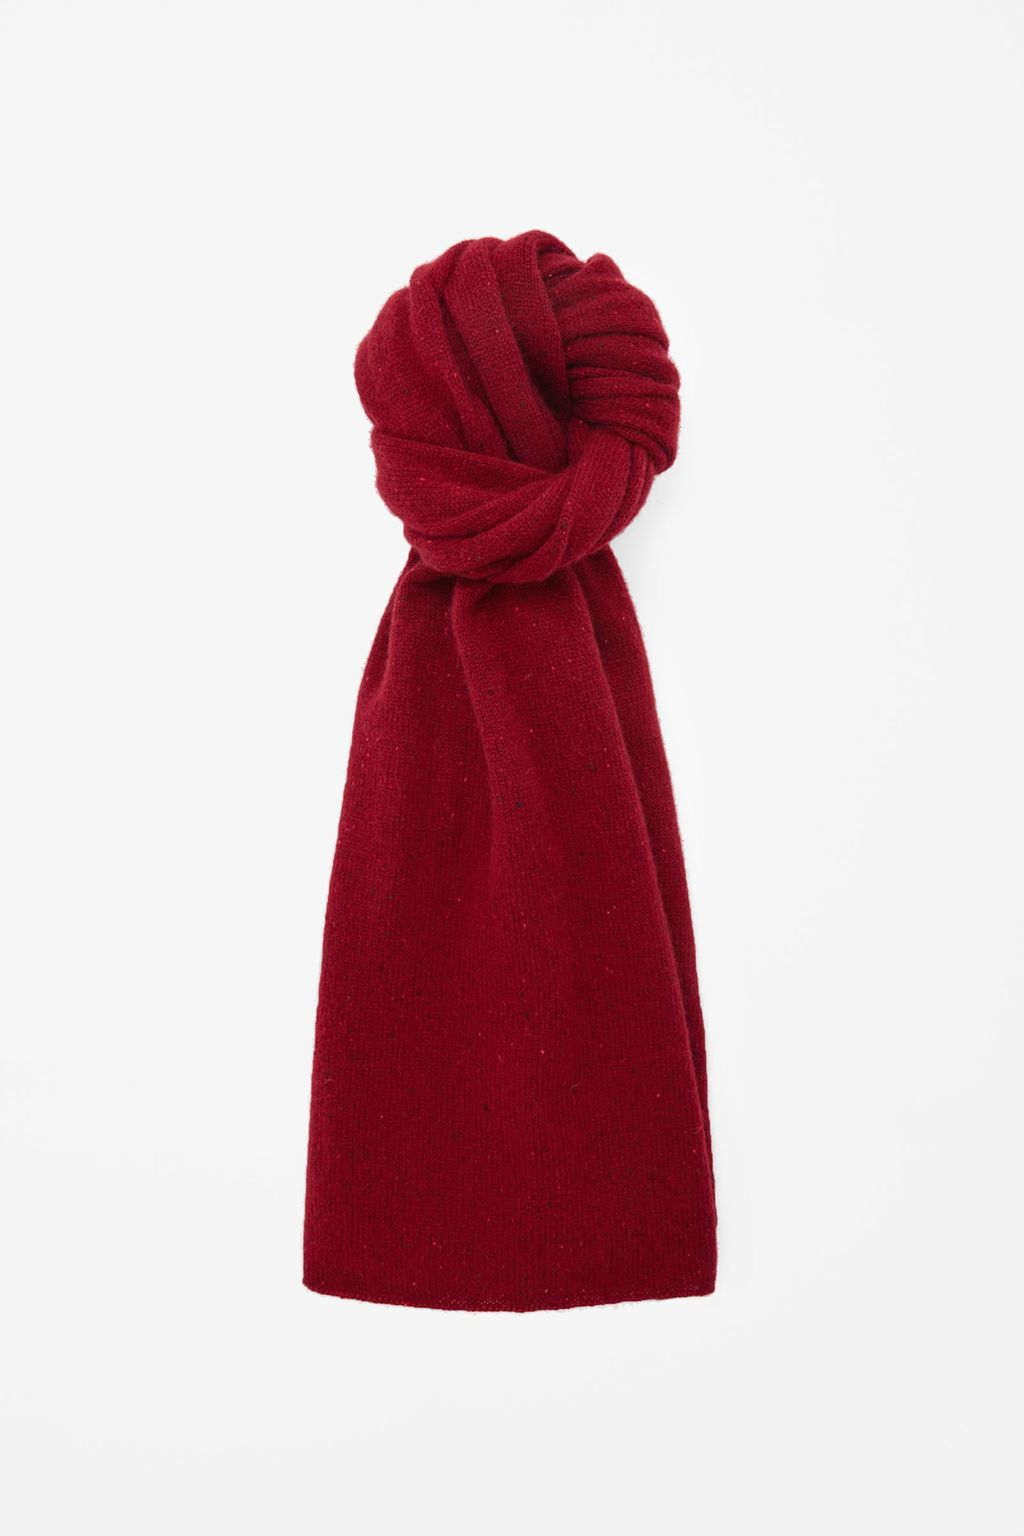 Speckled Cashmere Scarf - occasions: casual; style: regular; size: standard; pattern: plain; material: cashmere; predominant colour: raspberry; season: a/w 2015; wardrobe: highlight